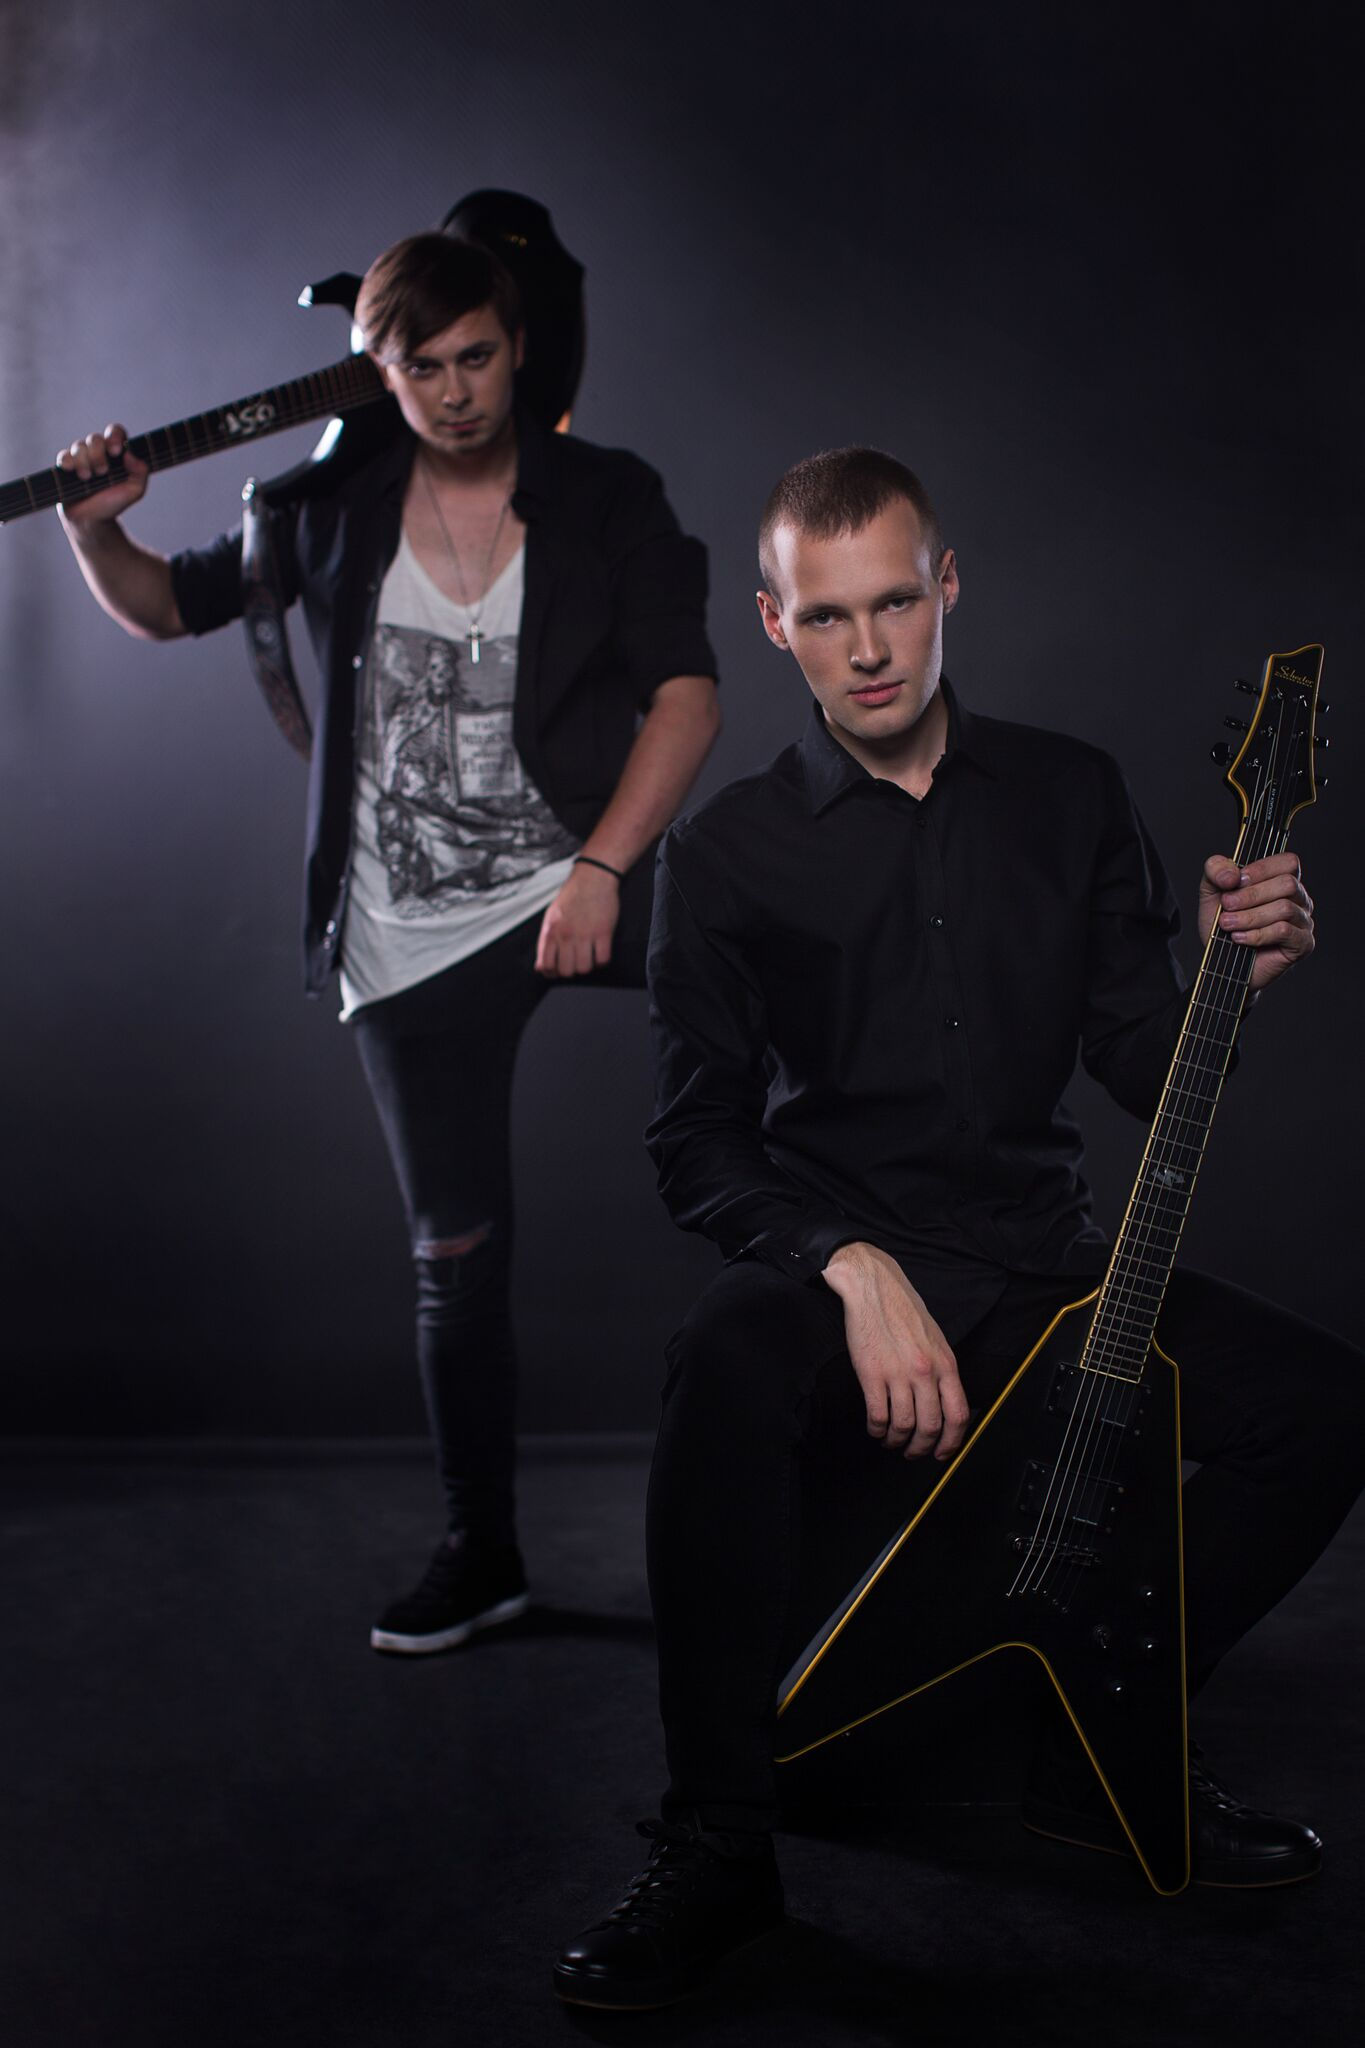 Sasha V. and Ilya Dykin (guitars)